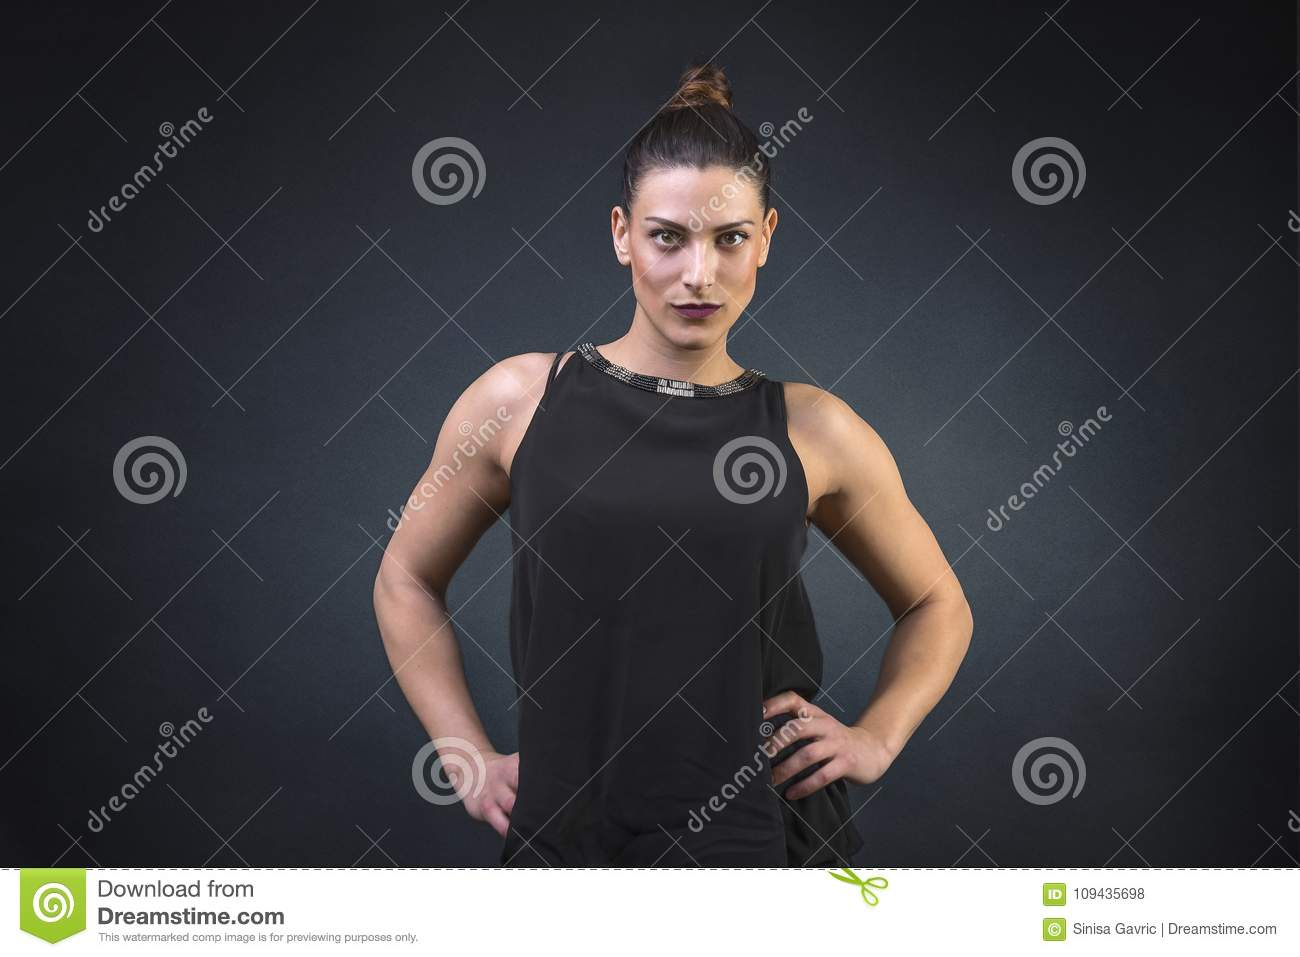 Muscular and Attractive young woman, showing off her strong build muscular body dressed for a night out